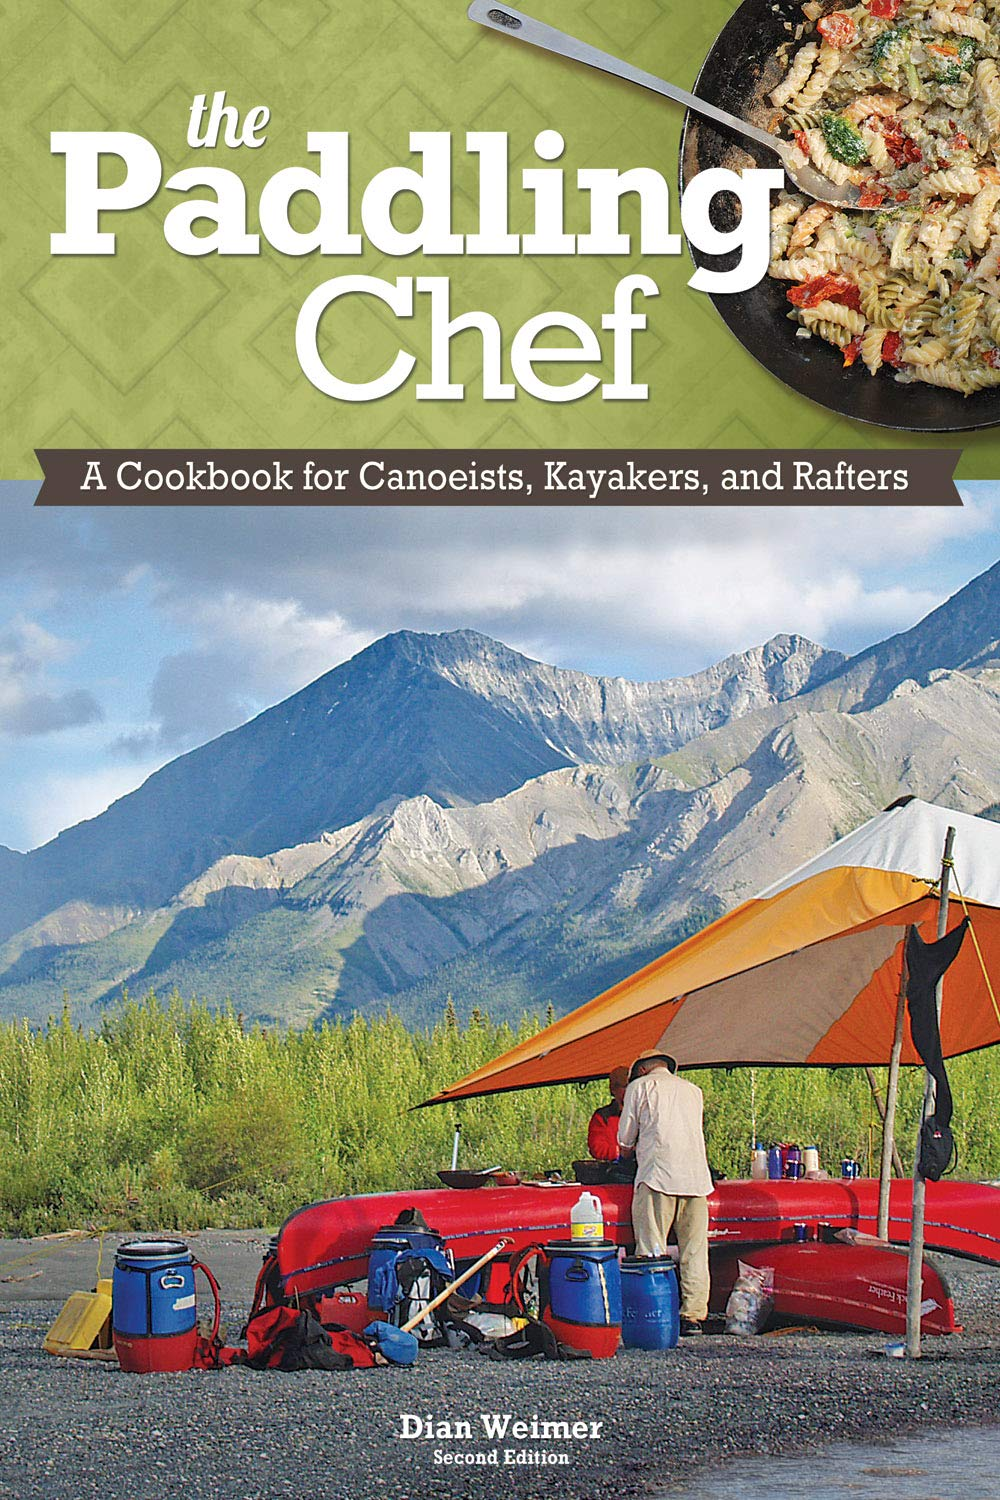 The Paddling Chef, Second Edition: A Cookbook For Canoeists, Kayakers, And Rafters (Heliconia Press)